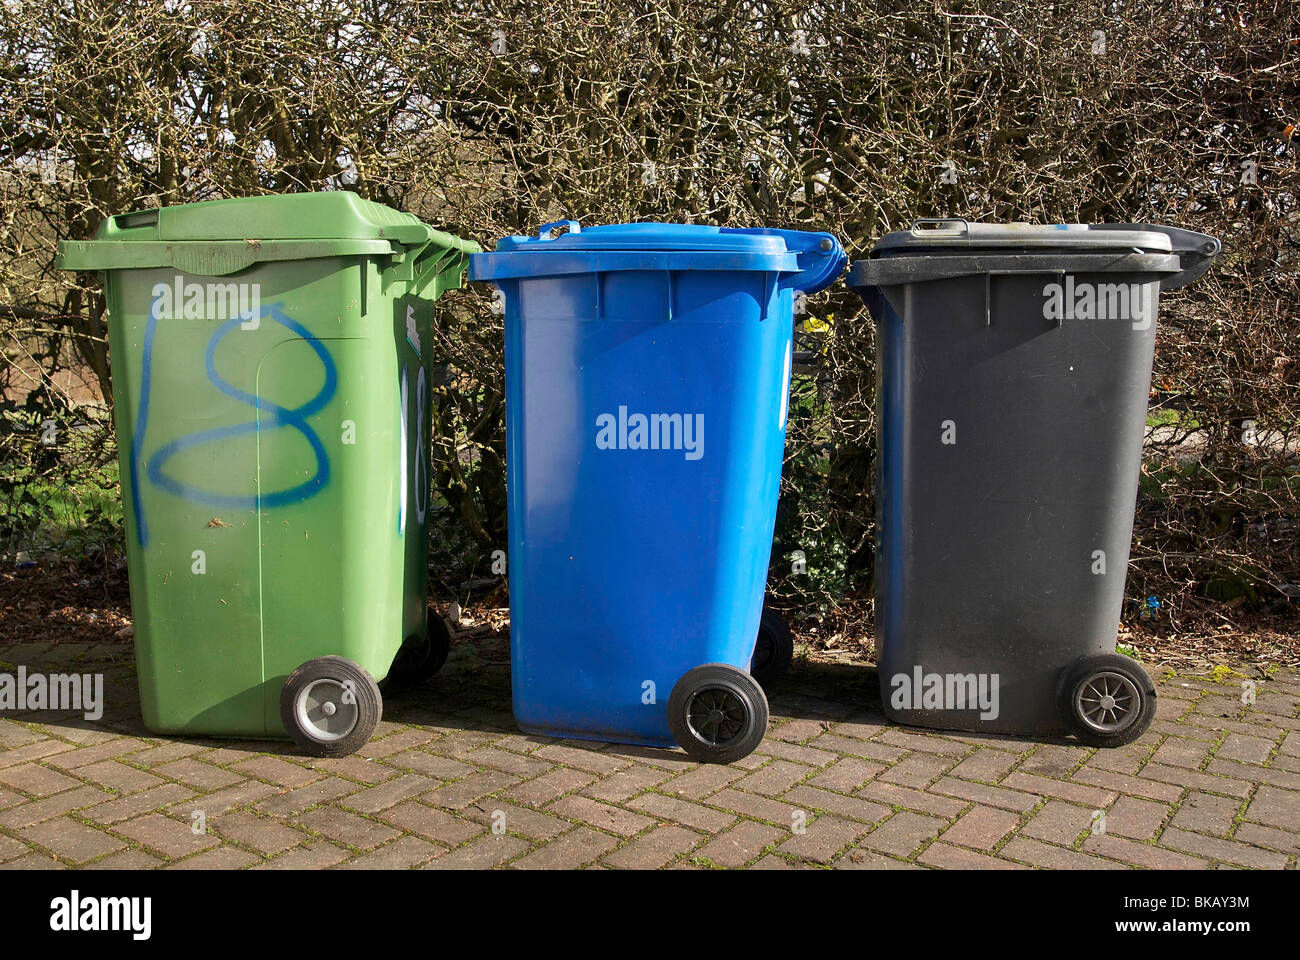 Three wheelie bins green blue and black for domestic refuse collection. Stock Photo